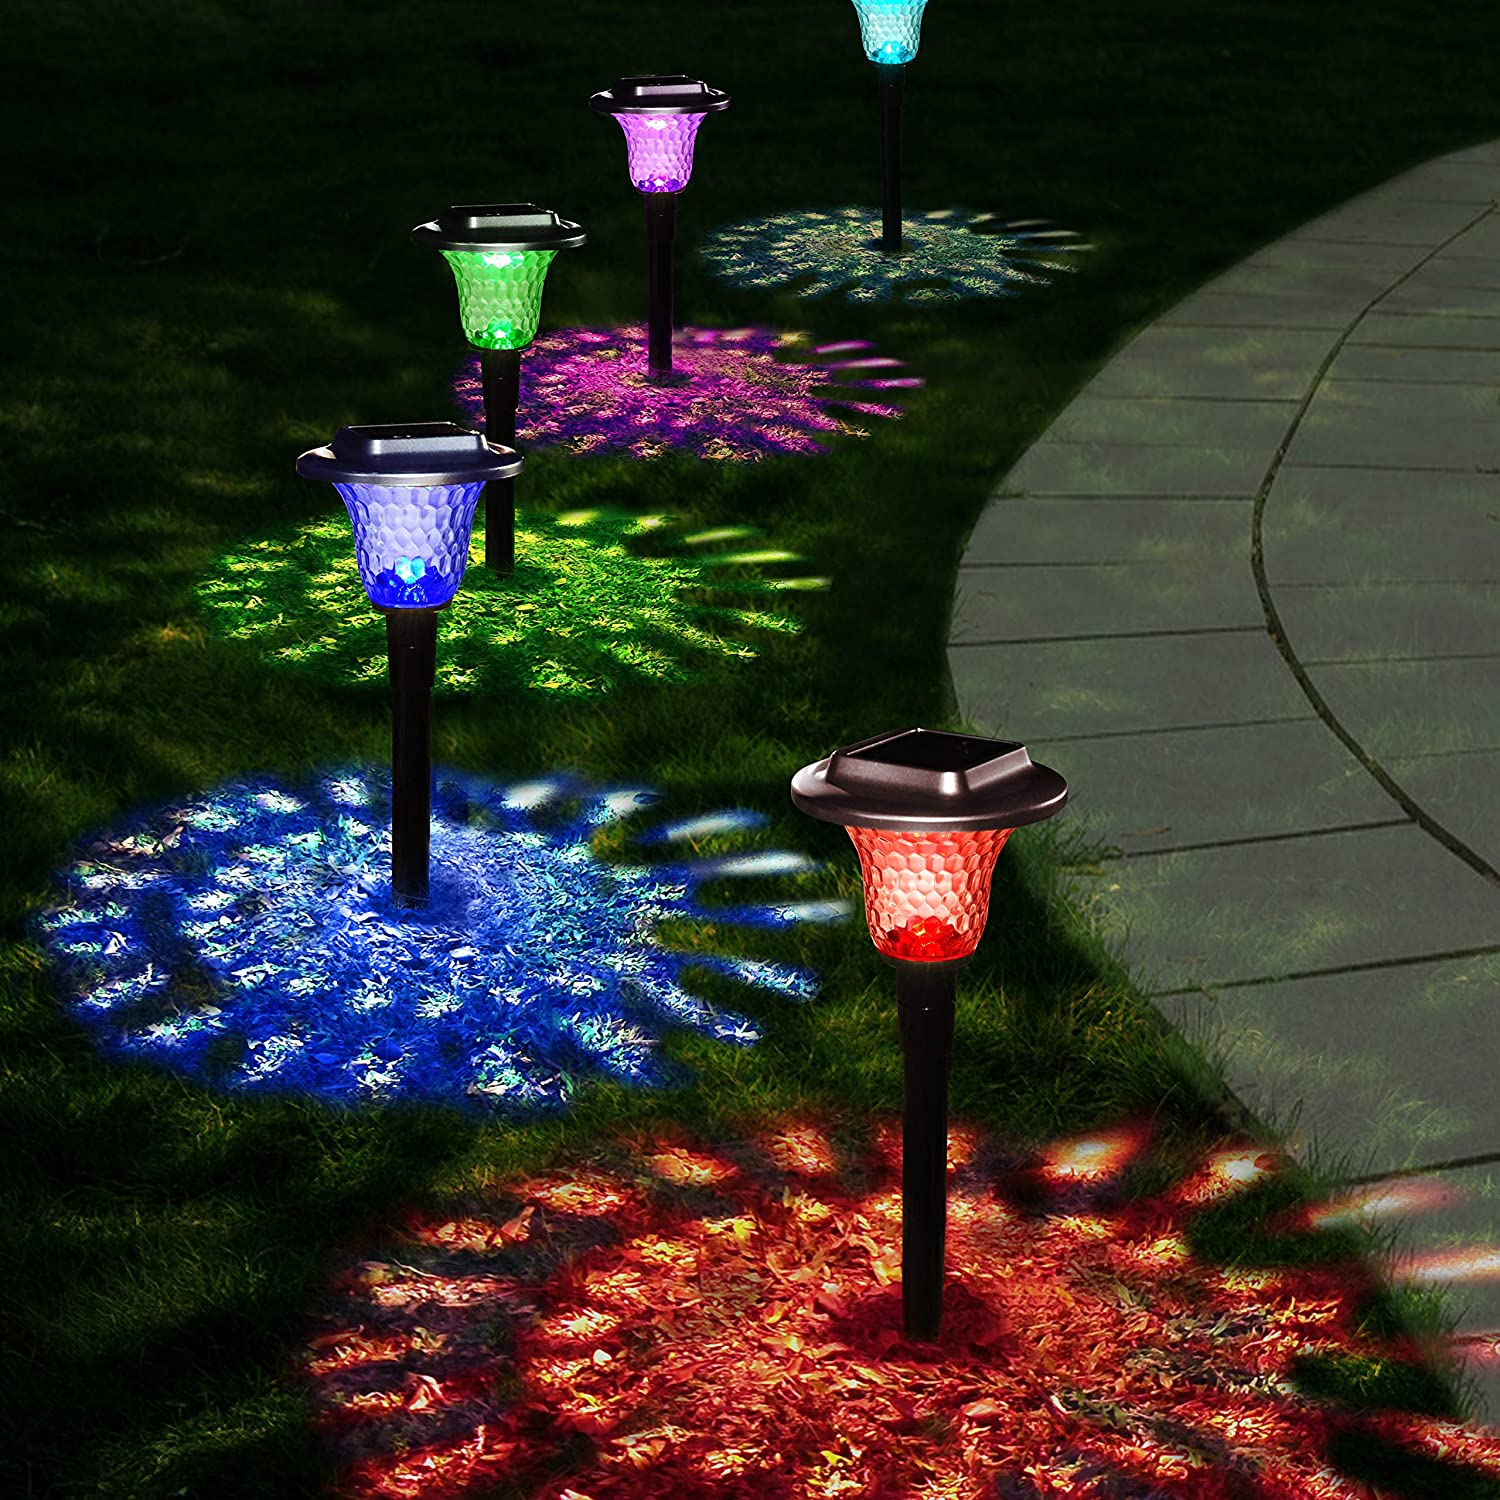 Flykul Solar Lights Outdoor, 6 Pack Auto Color Changing Solar Pathway Colorful Bright Glass Garden Lights,Waterproof Solar Powered Landscape Lights for Lawn Patio Courtyard Walkway Yard (Warm White)